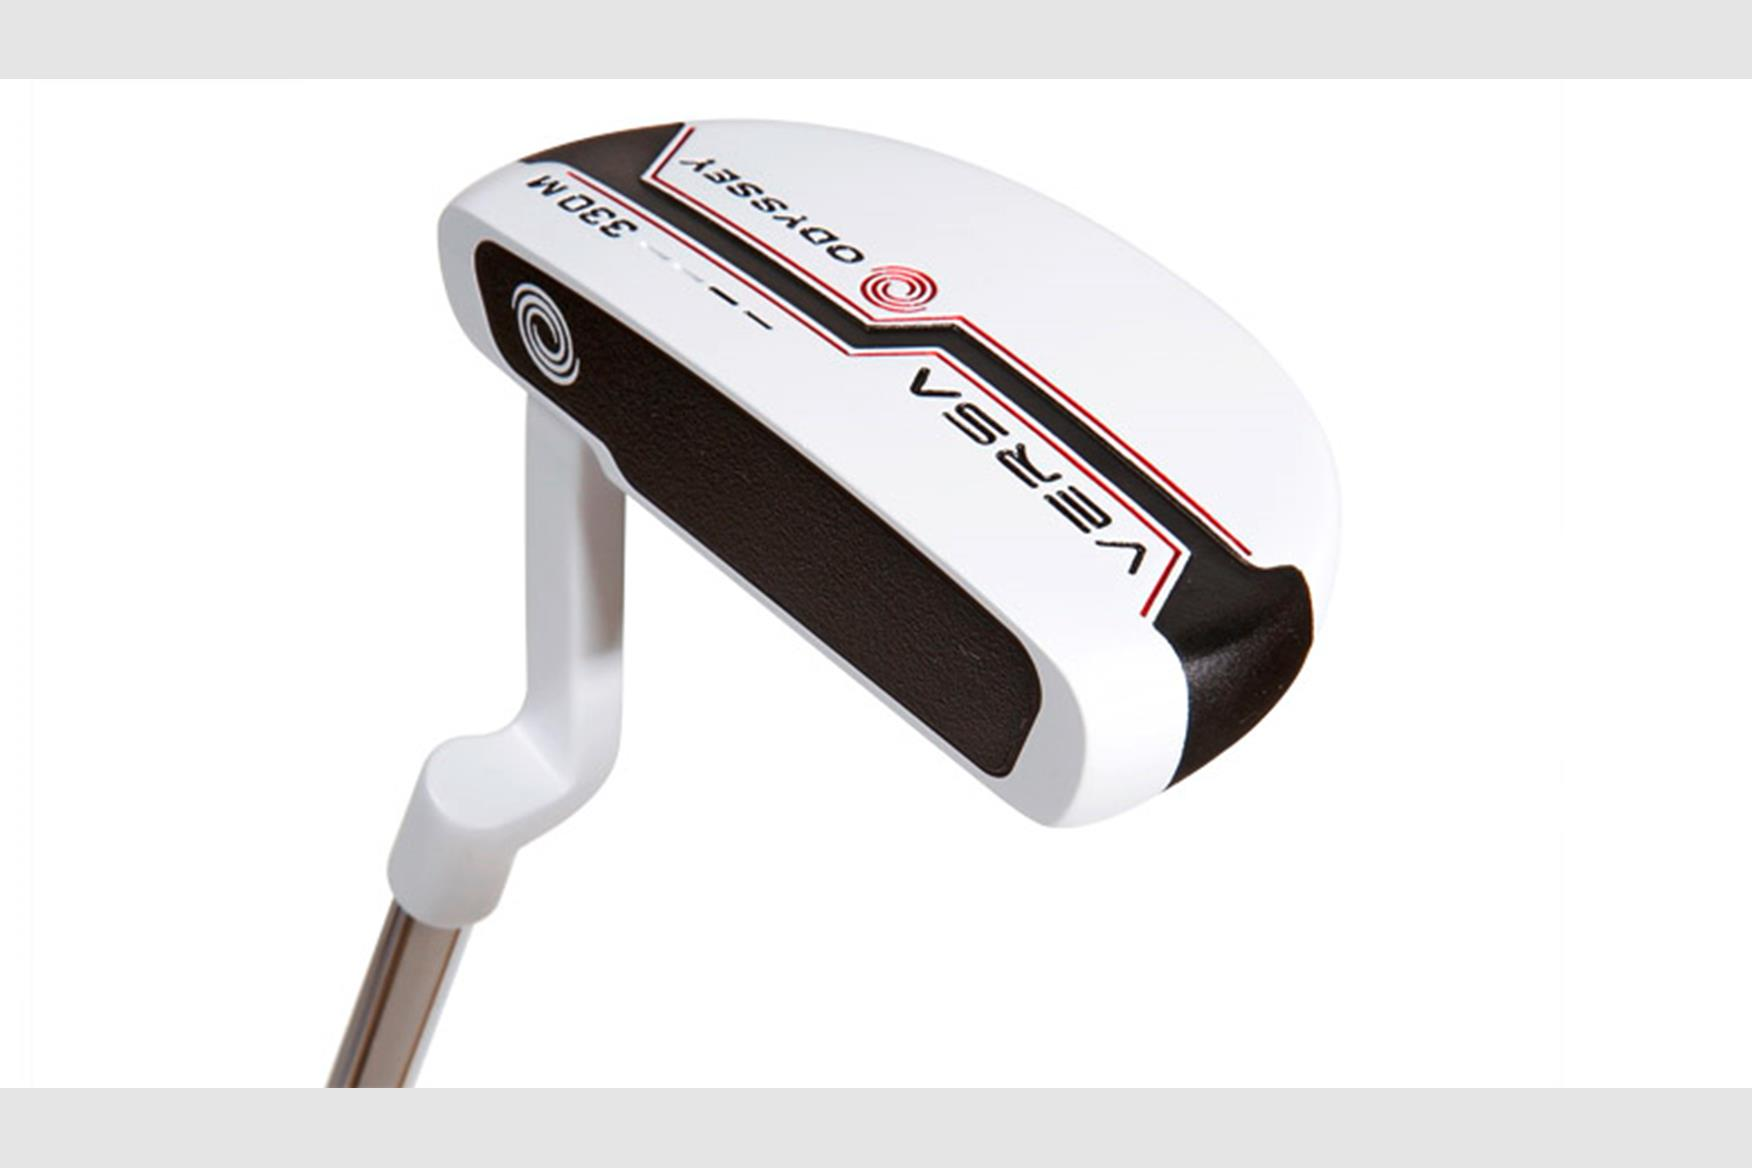 Odyssey Versa WBW 330 M Mid Mallet Putter Review | Equipment Reviews